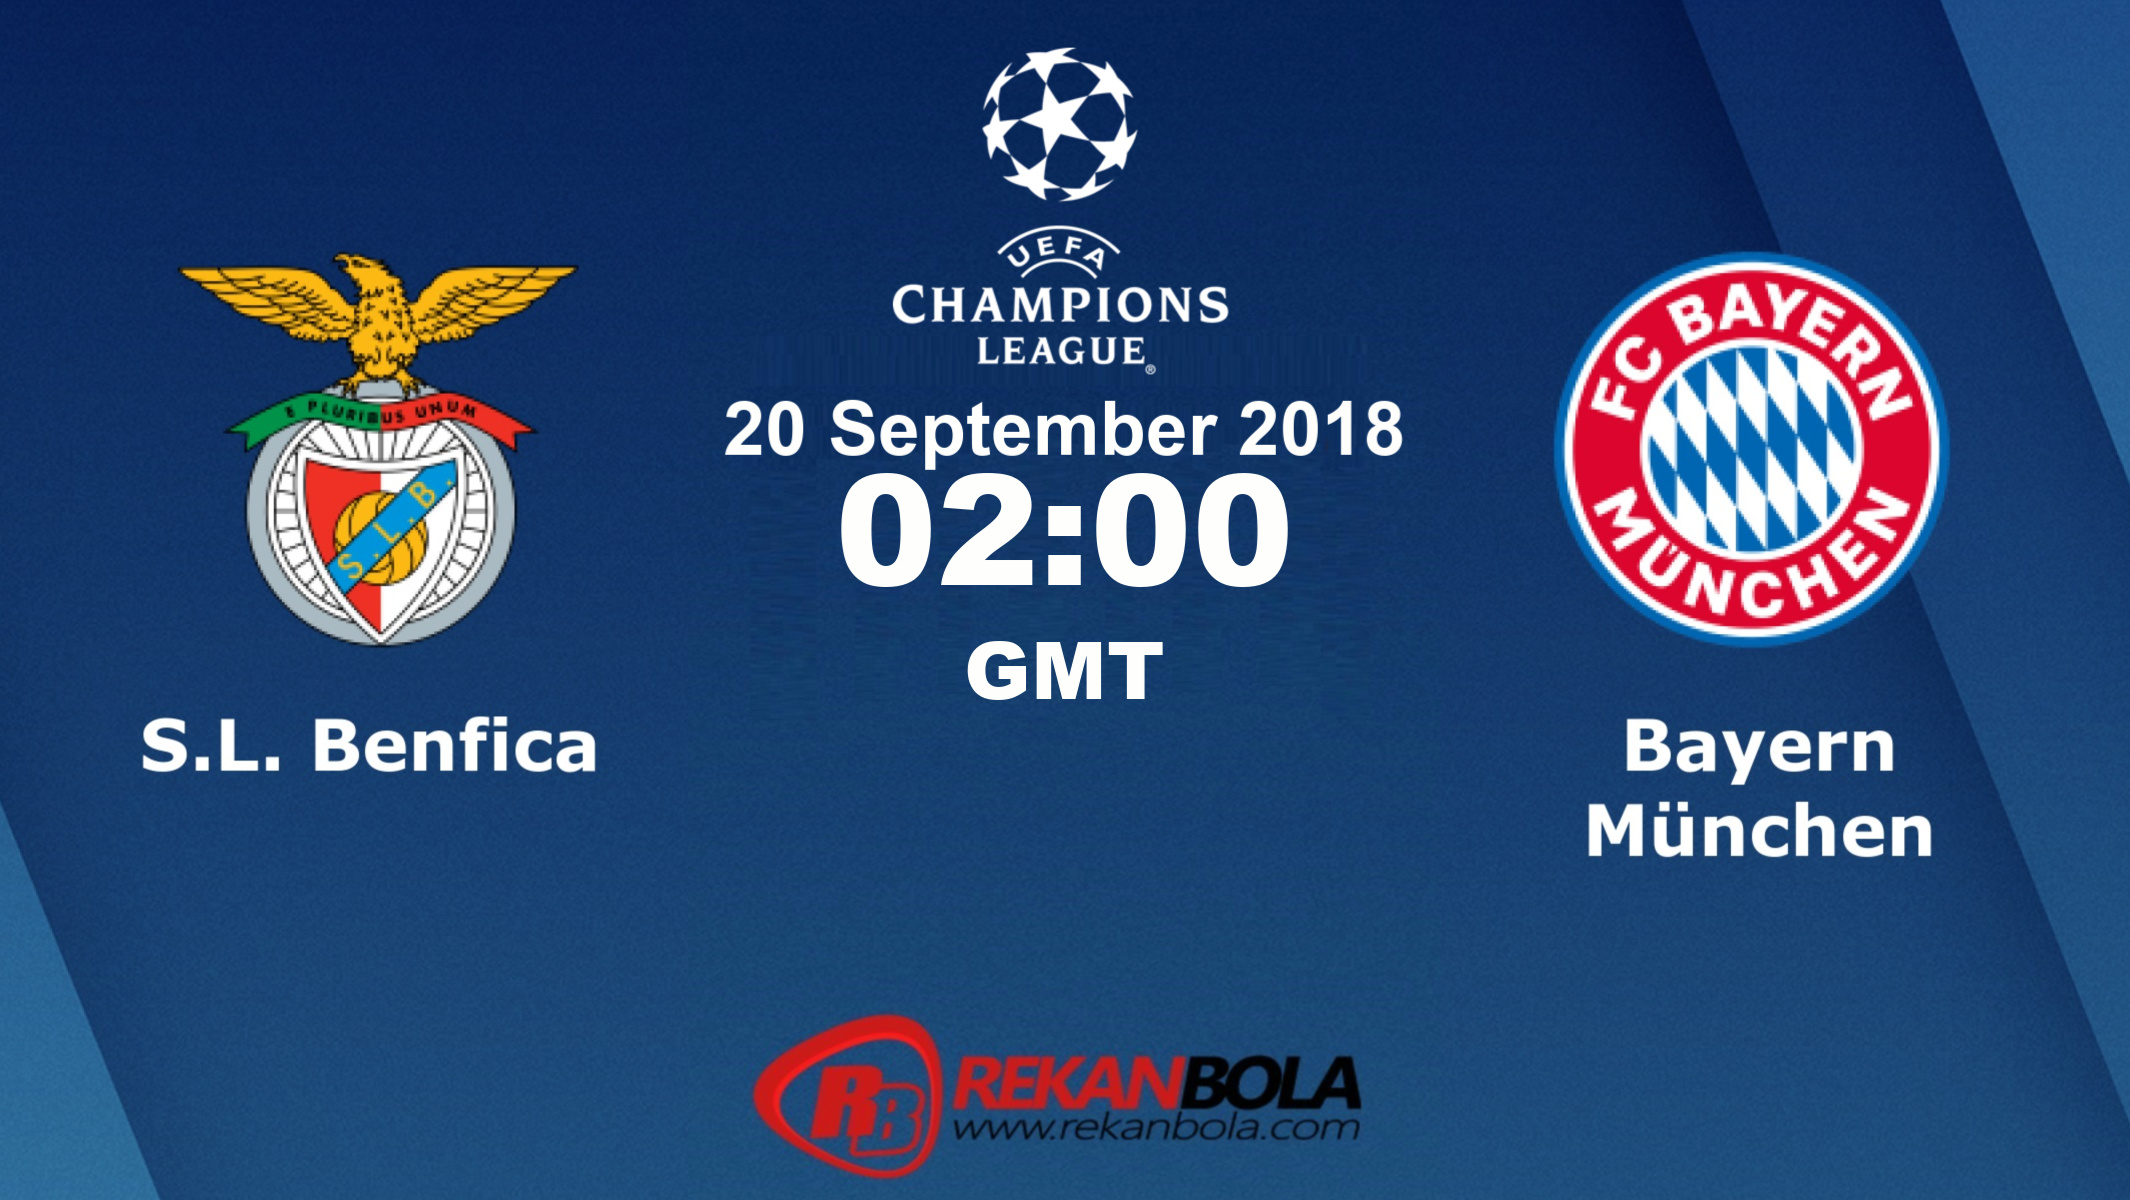 Nonton Siaran Live Streaming Benfica Vs Bayern Munich 20 September 2018